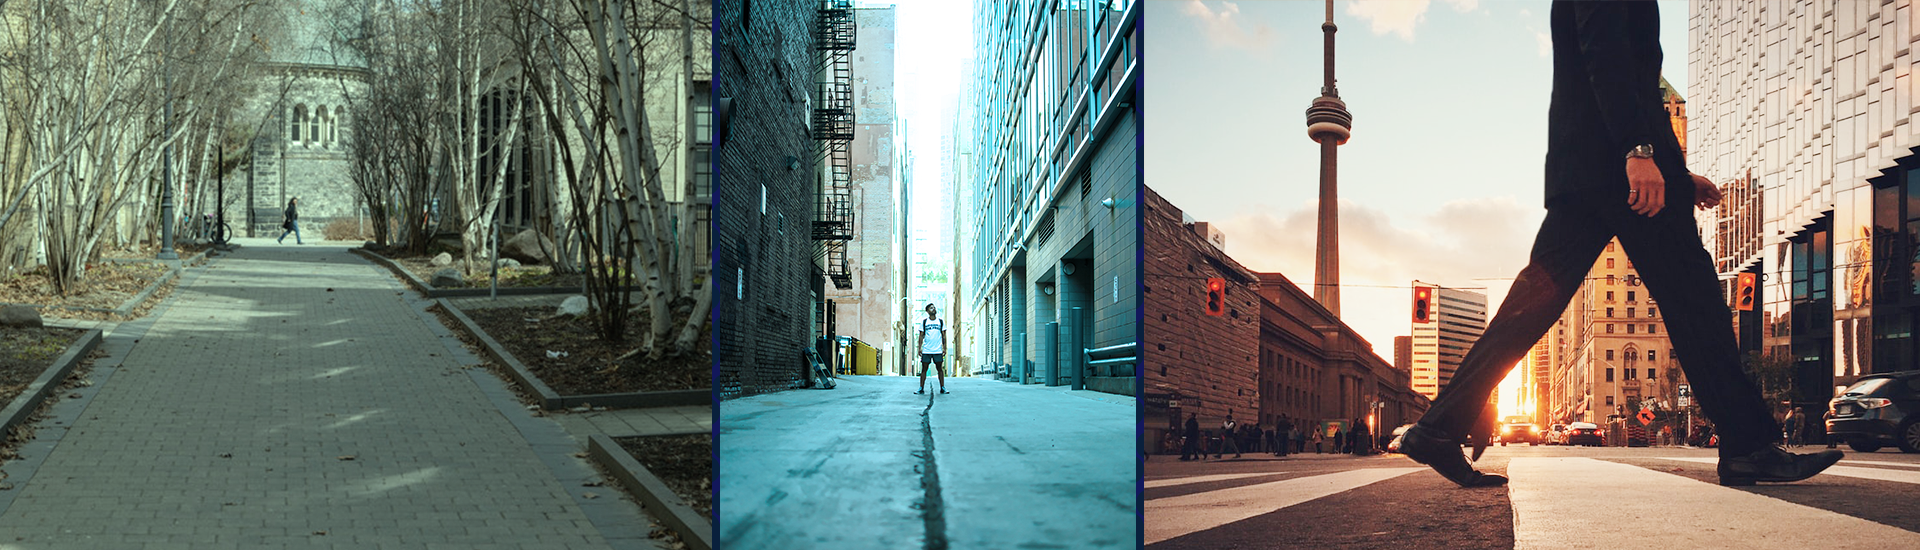 An image showing three parts of downtown Toronto- first with people walking at a distance at UofT, second with a man standing in an alleyway, third with a foot in the foreground, with CN tower in the background